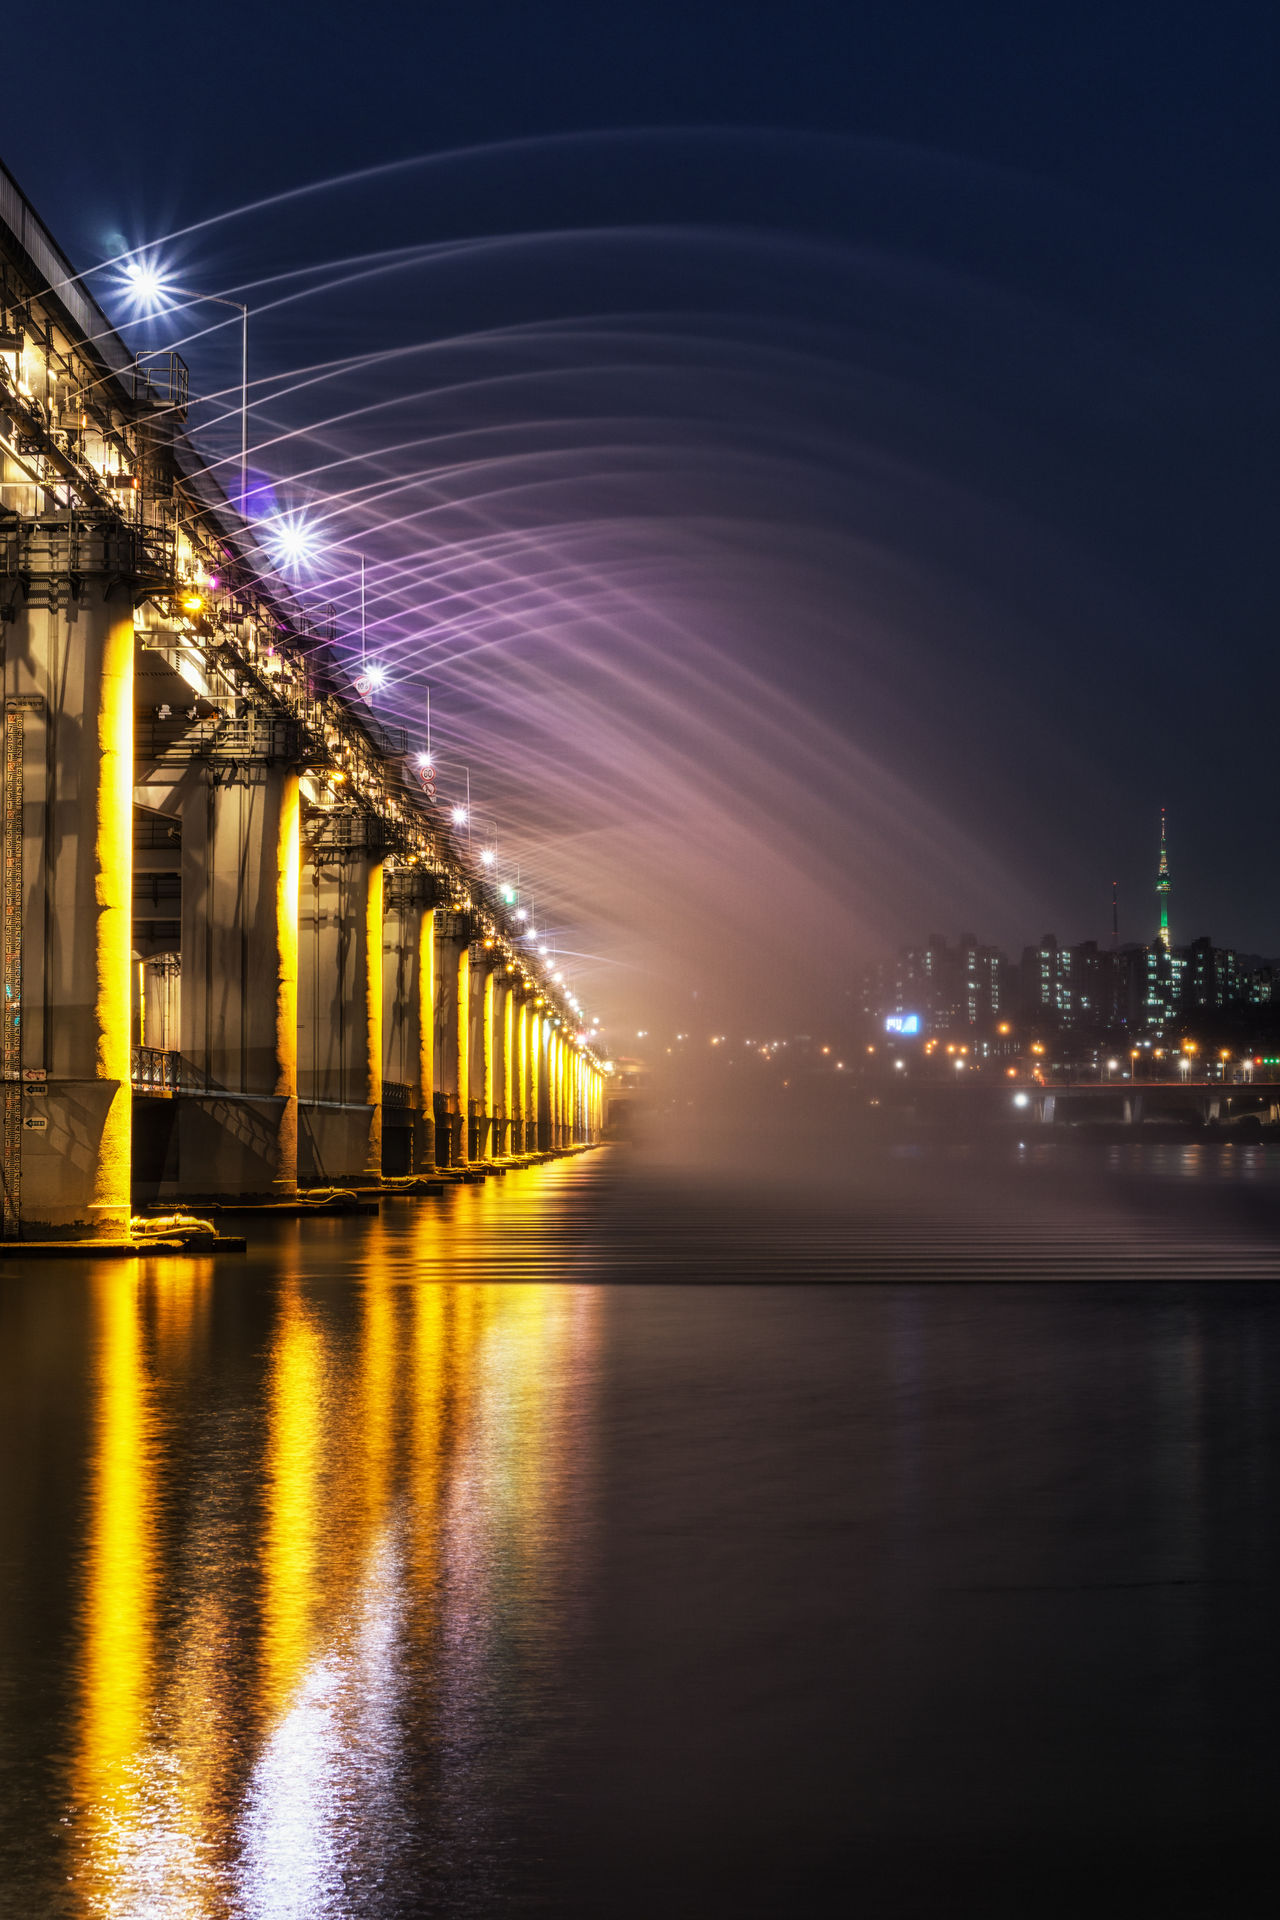 banpo bridge fountain show at night in seoul, south korea Banpo Bridge Bridge Bridge - Man Made Structure Built Structure Connection Engineering Fountain Show Korea Landmark Light Show Night Night View Pier River Seoul Seoul, Korea Suspension Bridge Travel